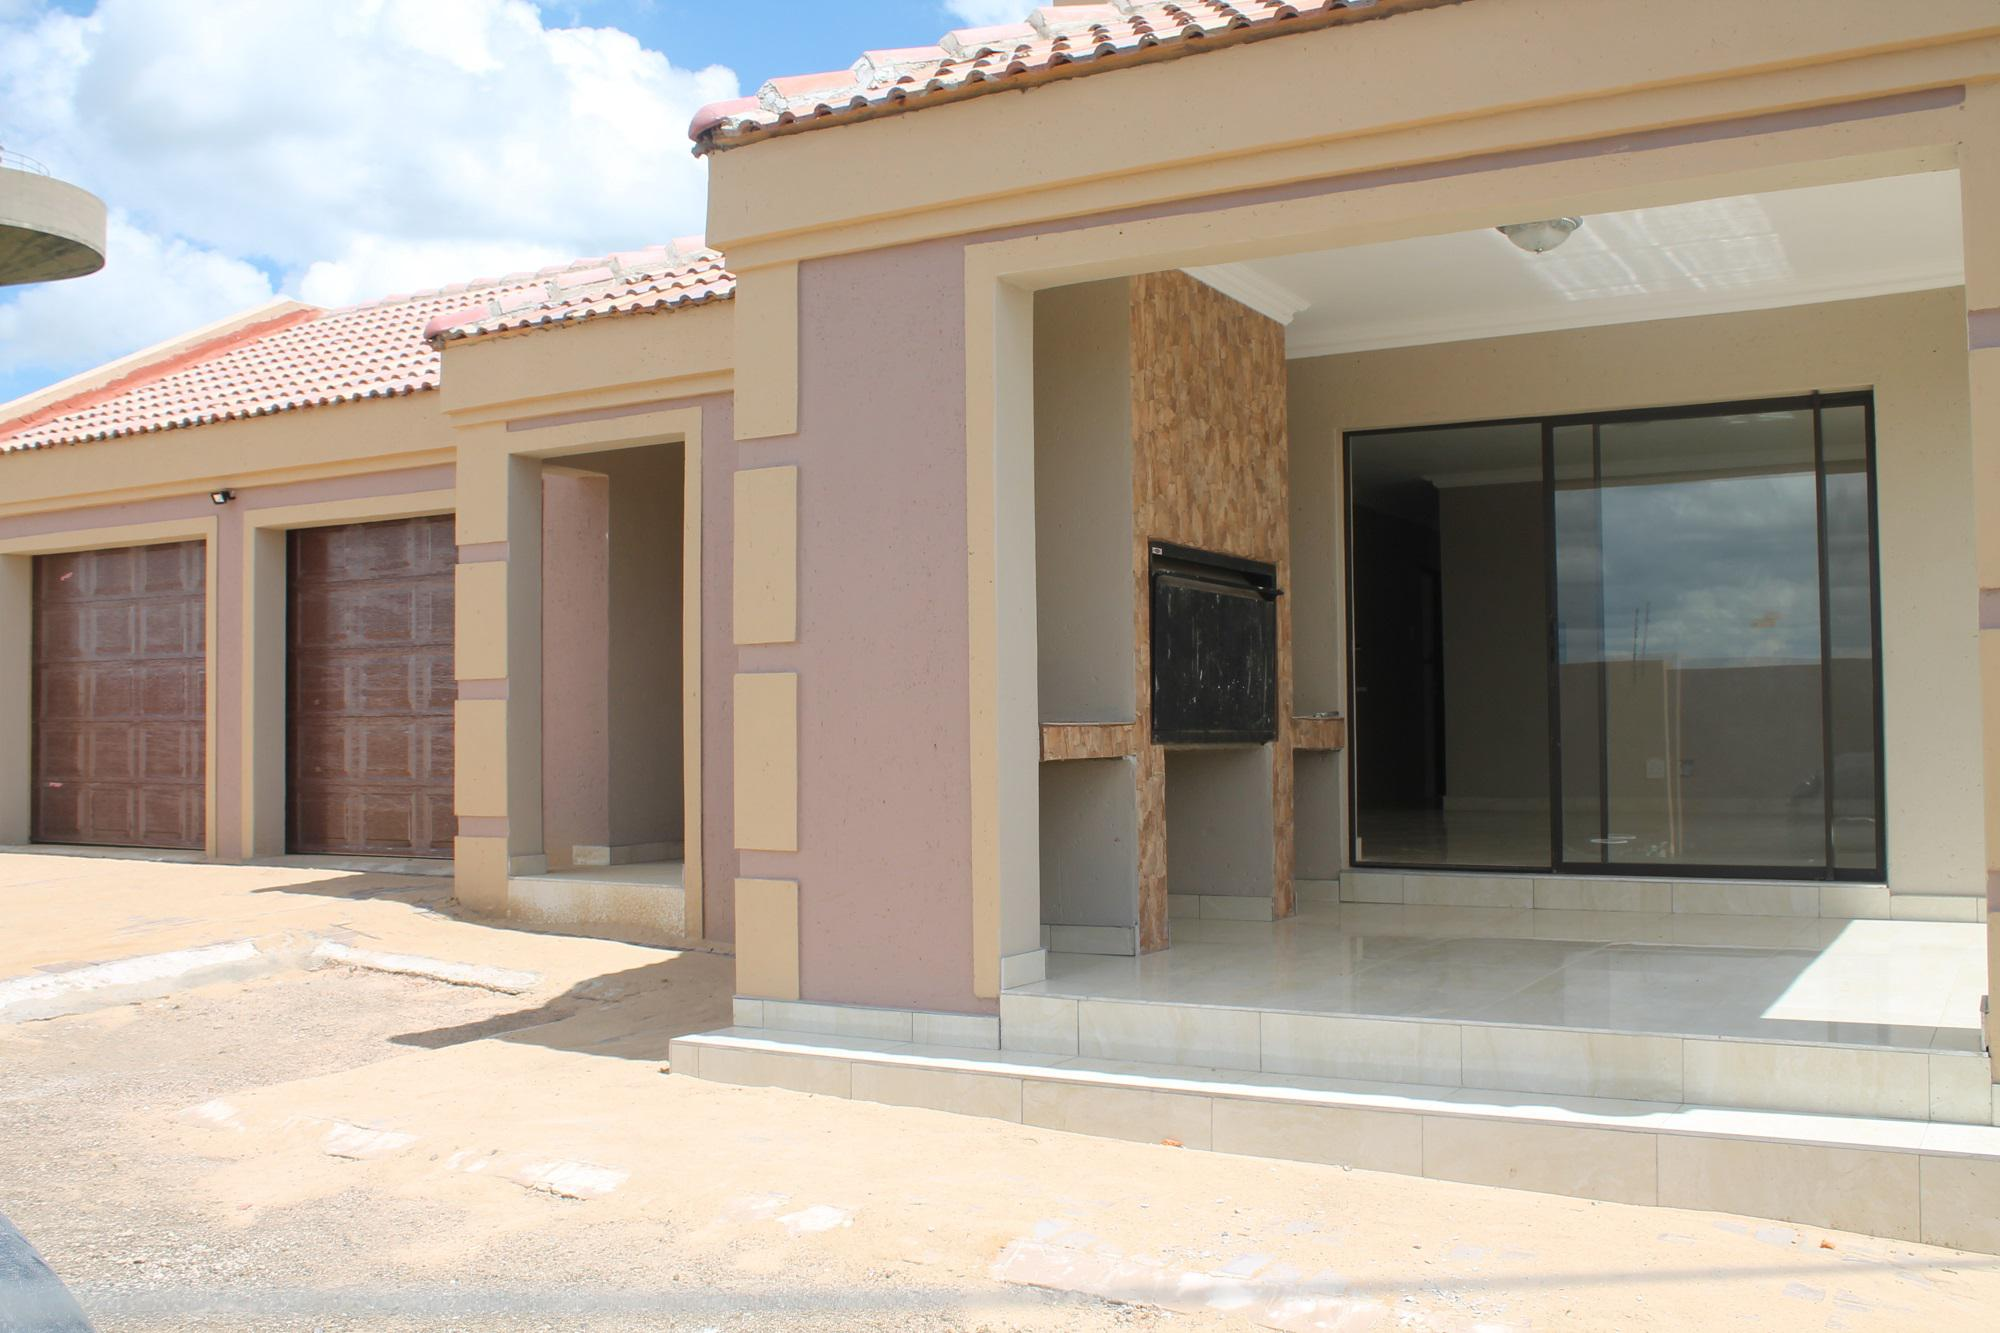 3 bedroom house for sale in evander